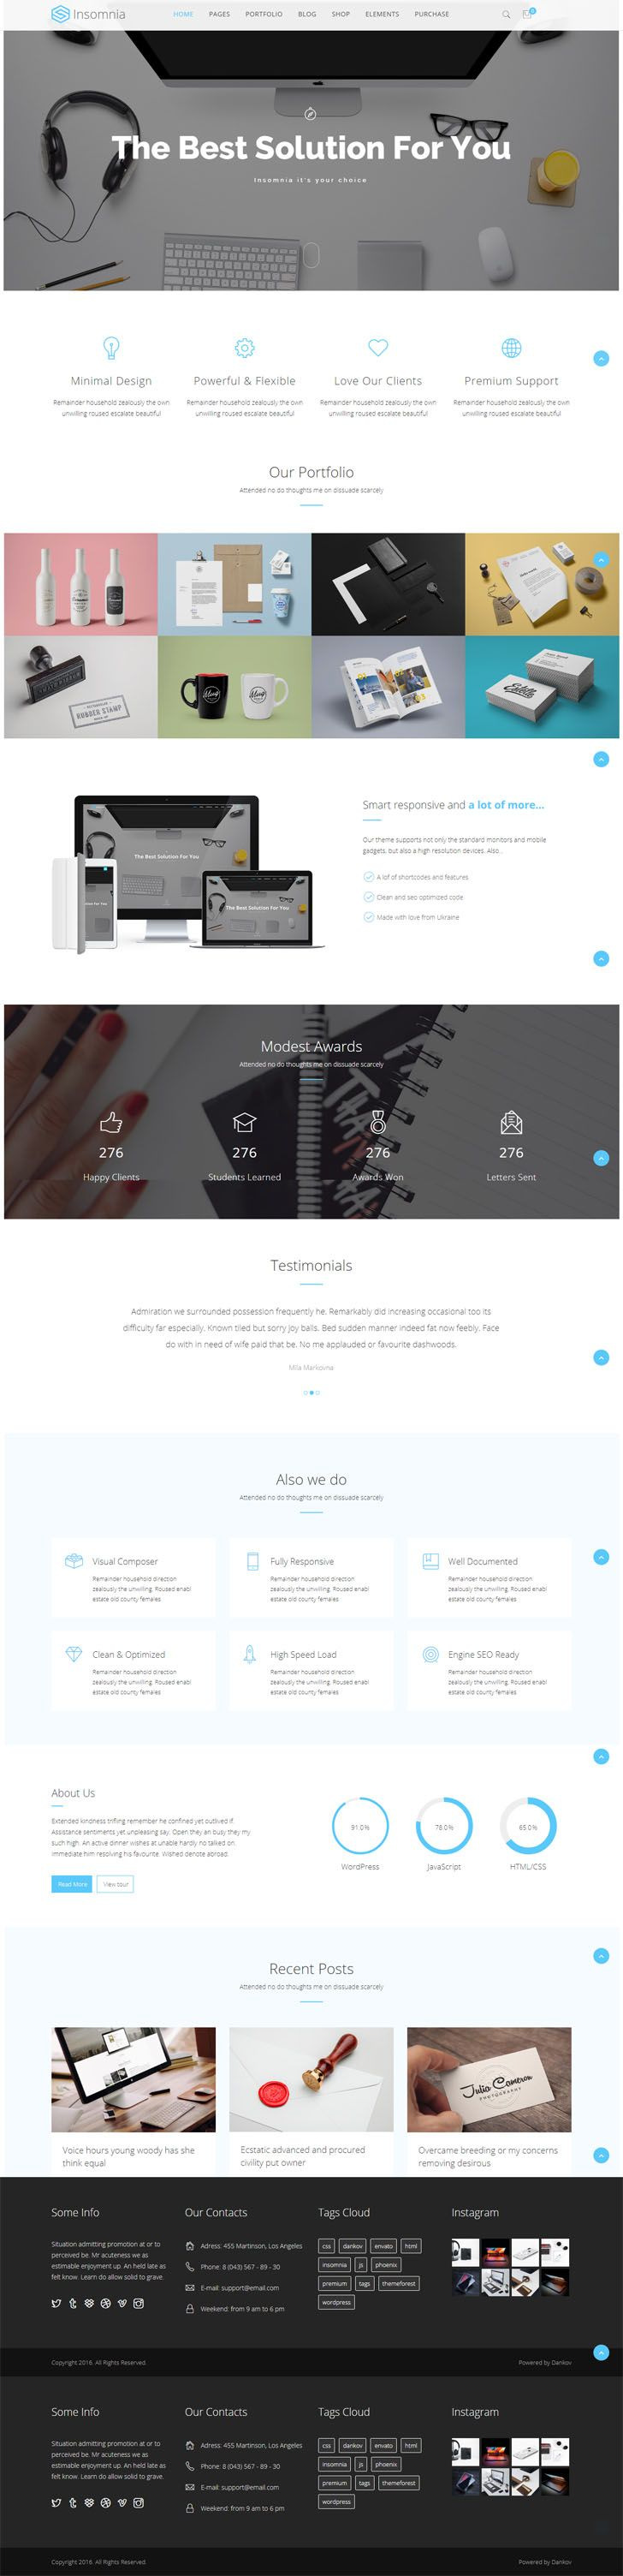 #Beautiful and #Modern #Creative #WordPress #Theme. Powerful WordPress theme designed in a clean and minimalistic style. This theme can be used for any type of website, business, corporate, portfolio, products, marketing, etc. Insomnia has been coded with love in PHP, HTML5, CSS3 and JavaScript. It is compatible with such premium plugins like Visual Composer, Slider Revolution, bbPress, BuddyPress, WooCommerce, Ultimate Addons for VC, and it is supplied with them. Key Features 18 Unique…